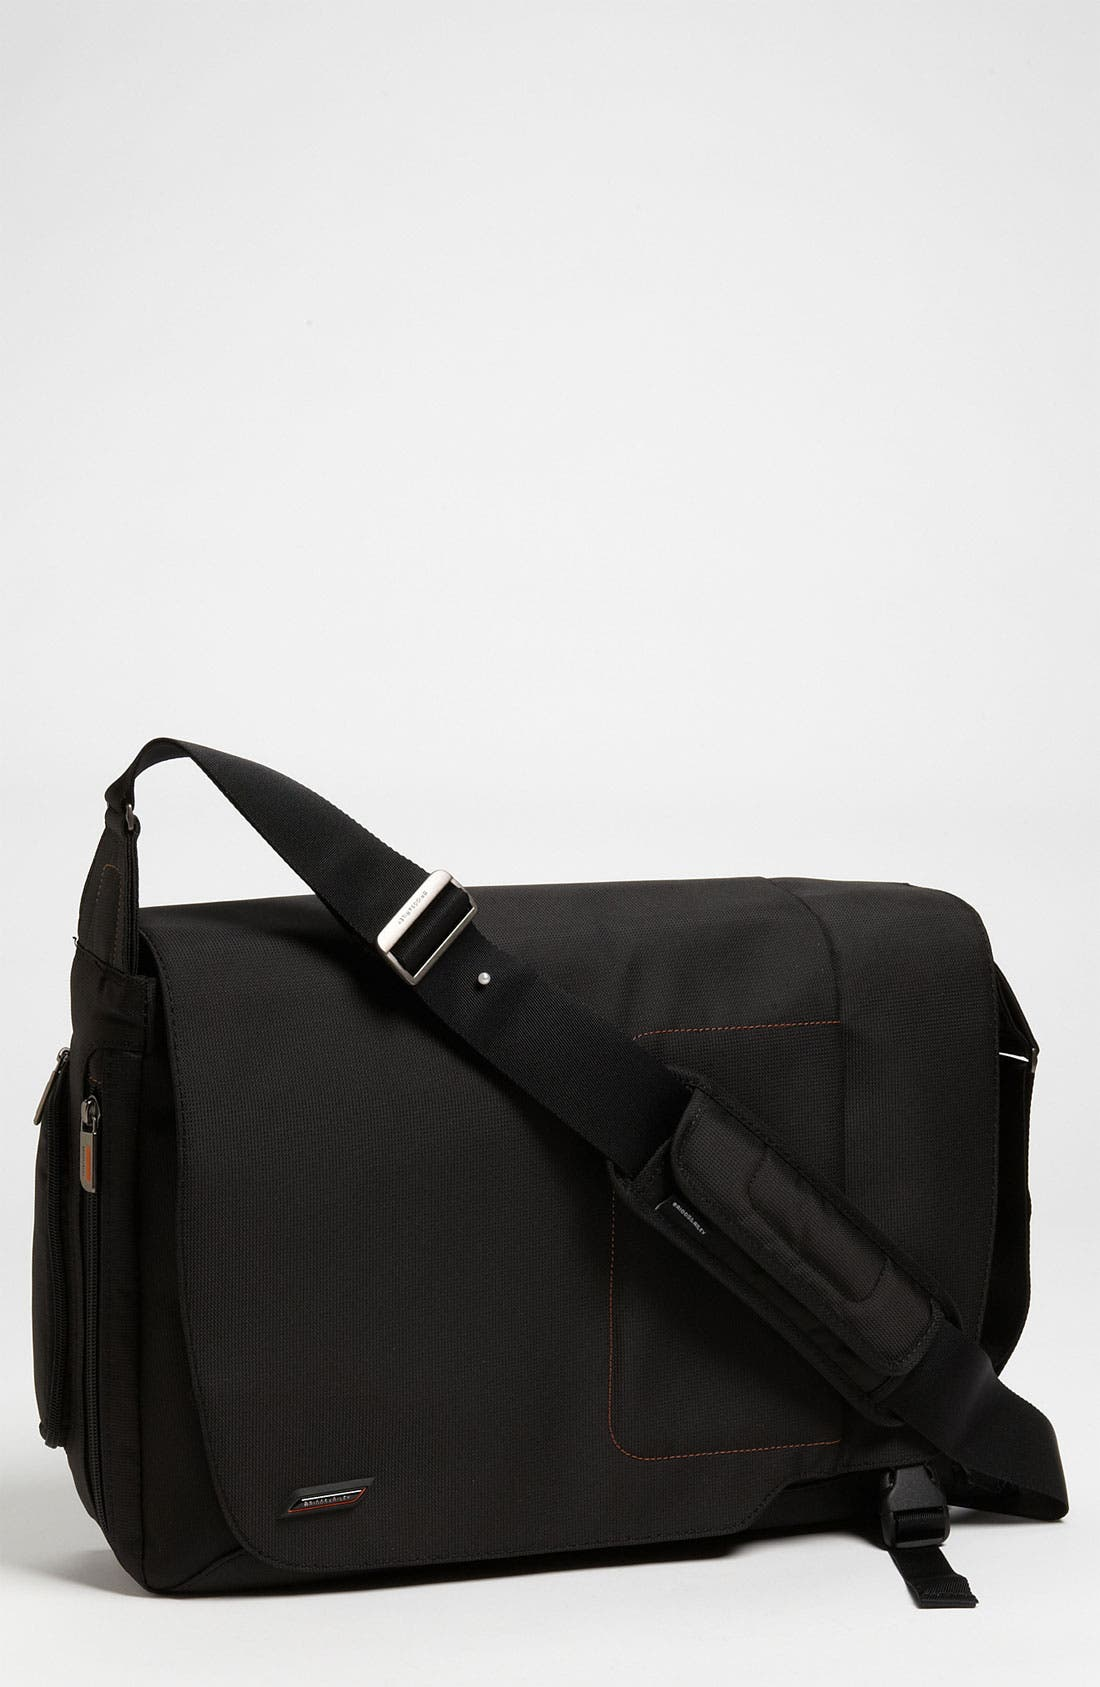 Alternate Image 1 Selected - Briggs & Riley 'Verb - Grow' Expandable Water Resistant Messenger Bag